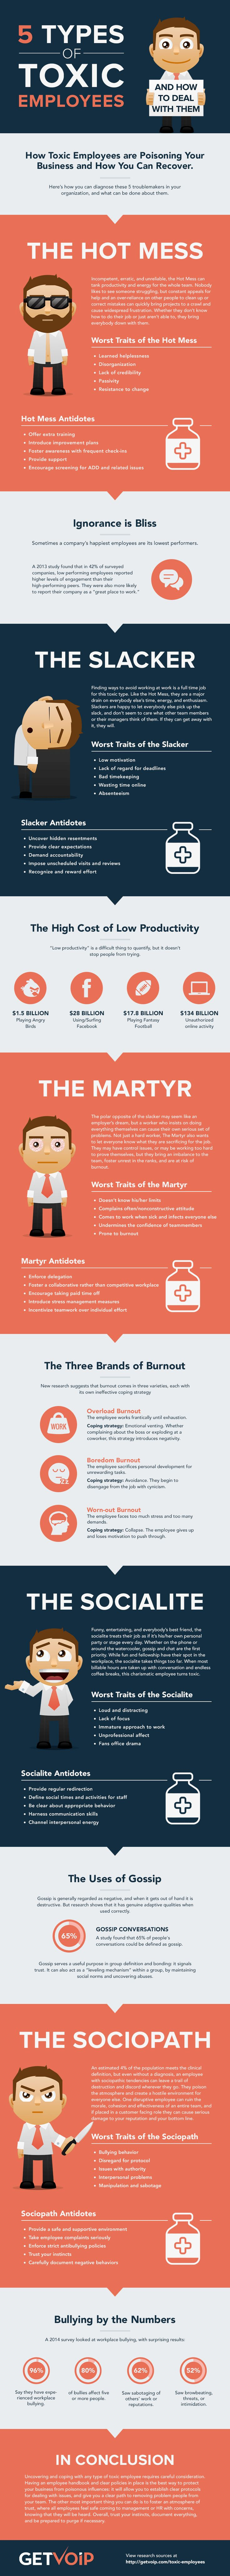 teoxic employees (Infographic)